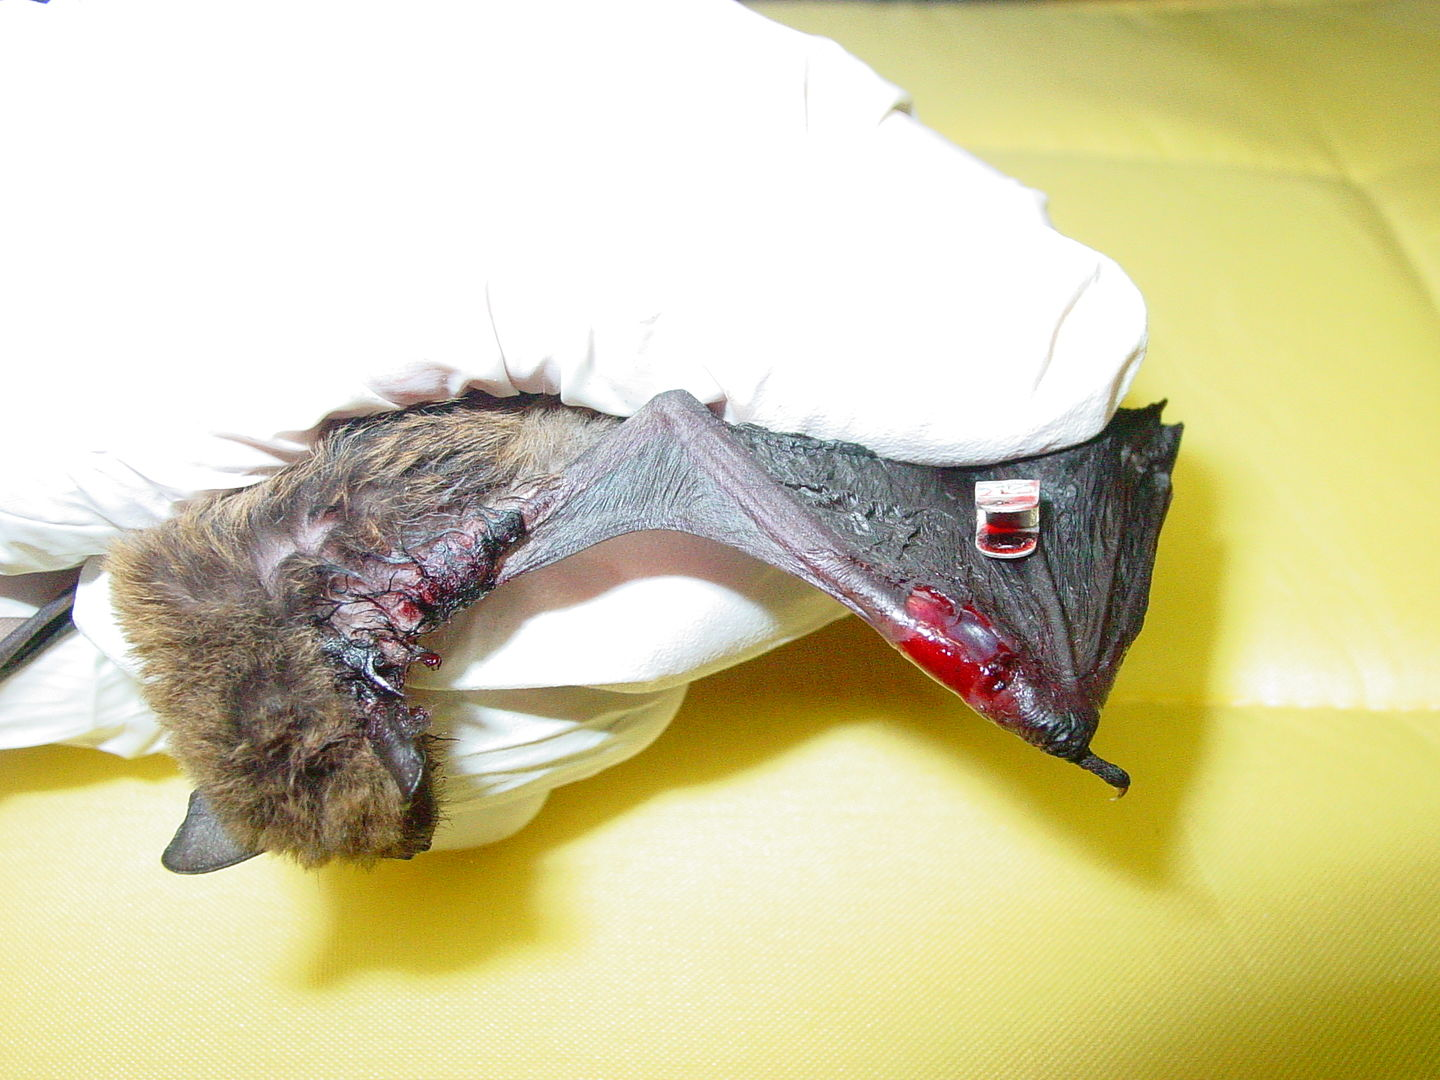 Das Foto zeigt eine Fledermaus mit einer Ringverletzung am Flügel. Diese Verletzungen entstehen, wenn wildlebende Fledermäuse beringt werden. // The photo shows a bat with a ring injury on the wing. These injuries occur when ringing wild bats.